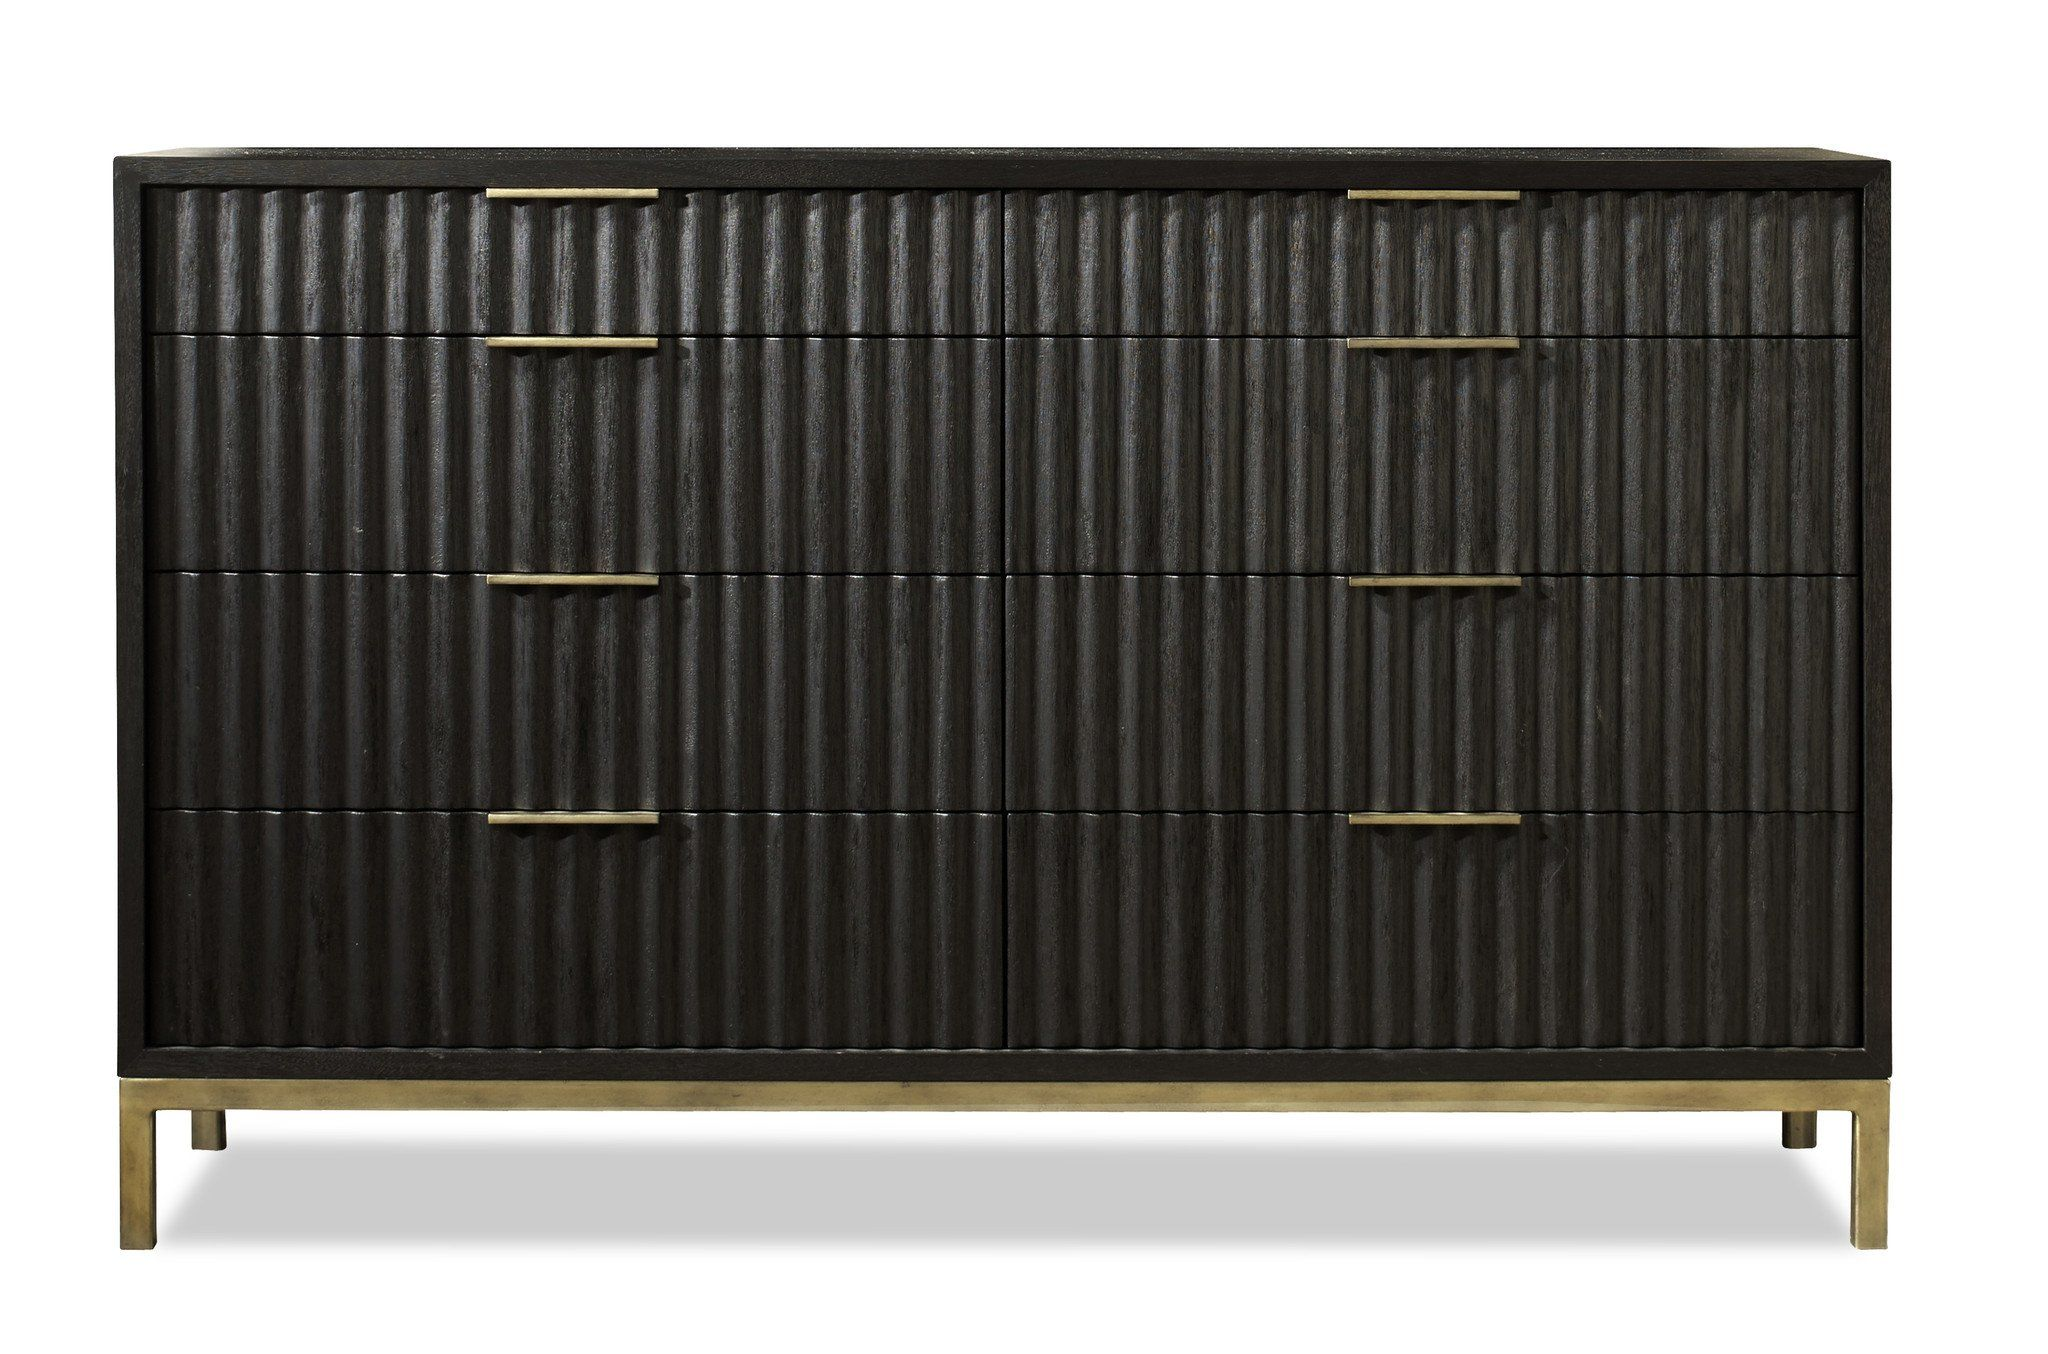 The Westmont Dresser Is A Sophisticated And Contemporary Piece That Features Wire Brushed Solid Mahogany Wood T Modern Dresser Double Dresser Colorful Dresser [ 1354 x 2048 Pixel ]